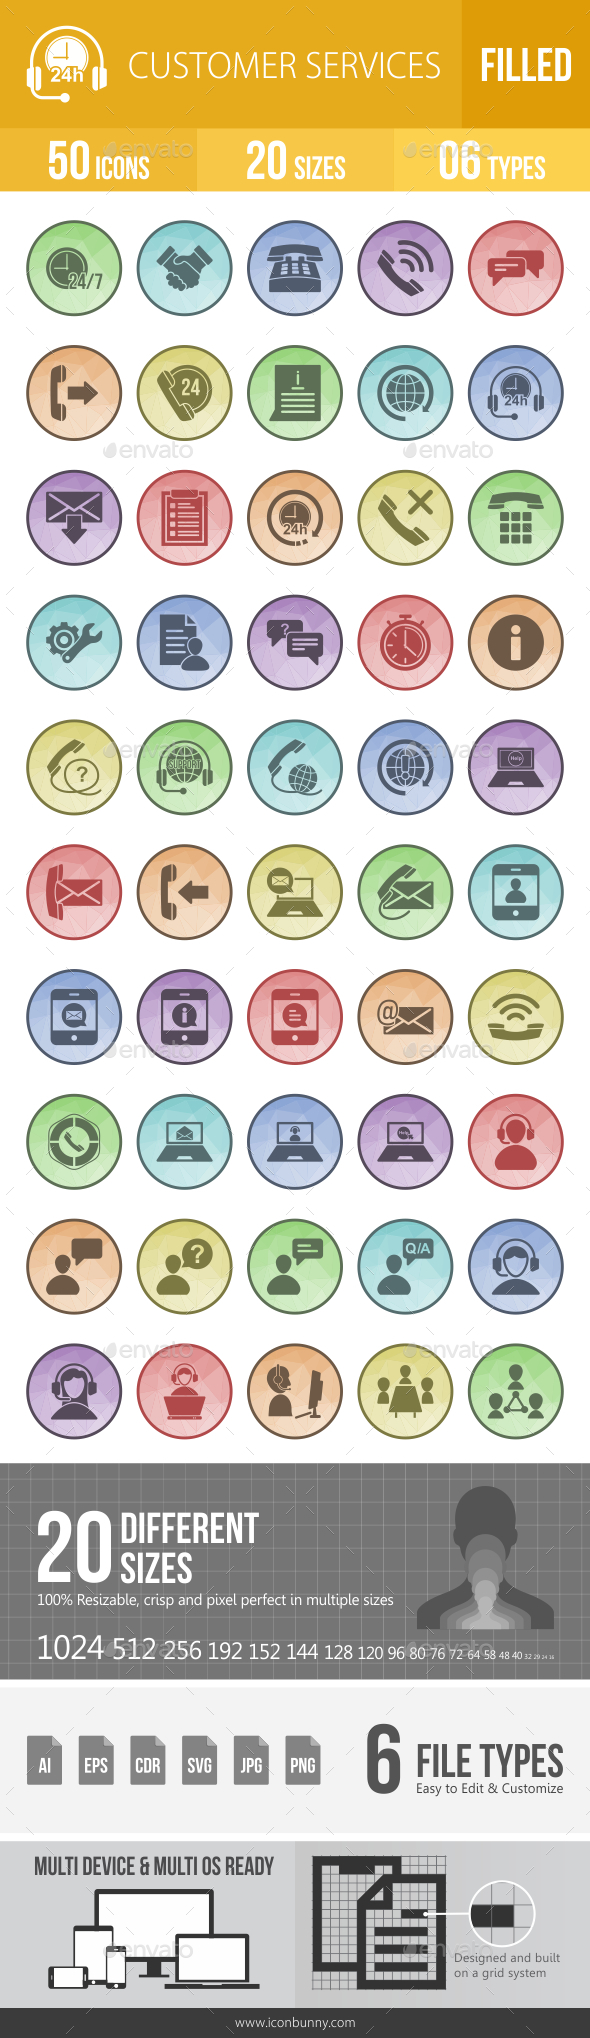 GraphicRiver 50 Customer Services Filled Low Poly Icons 21157440